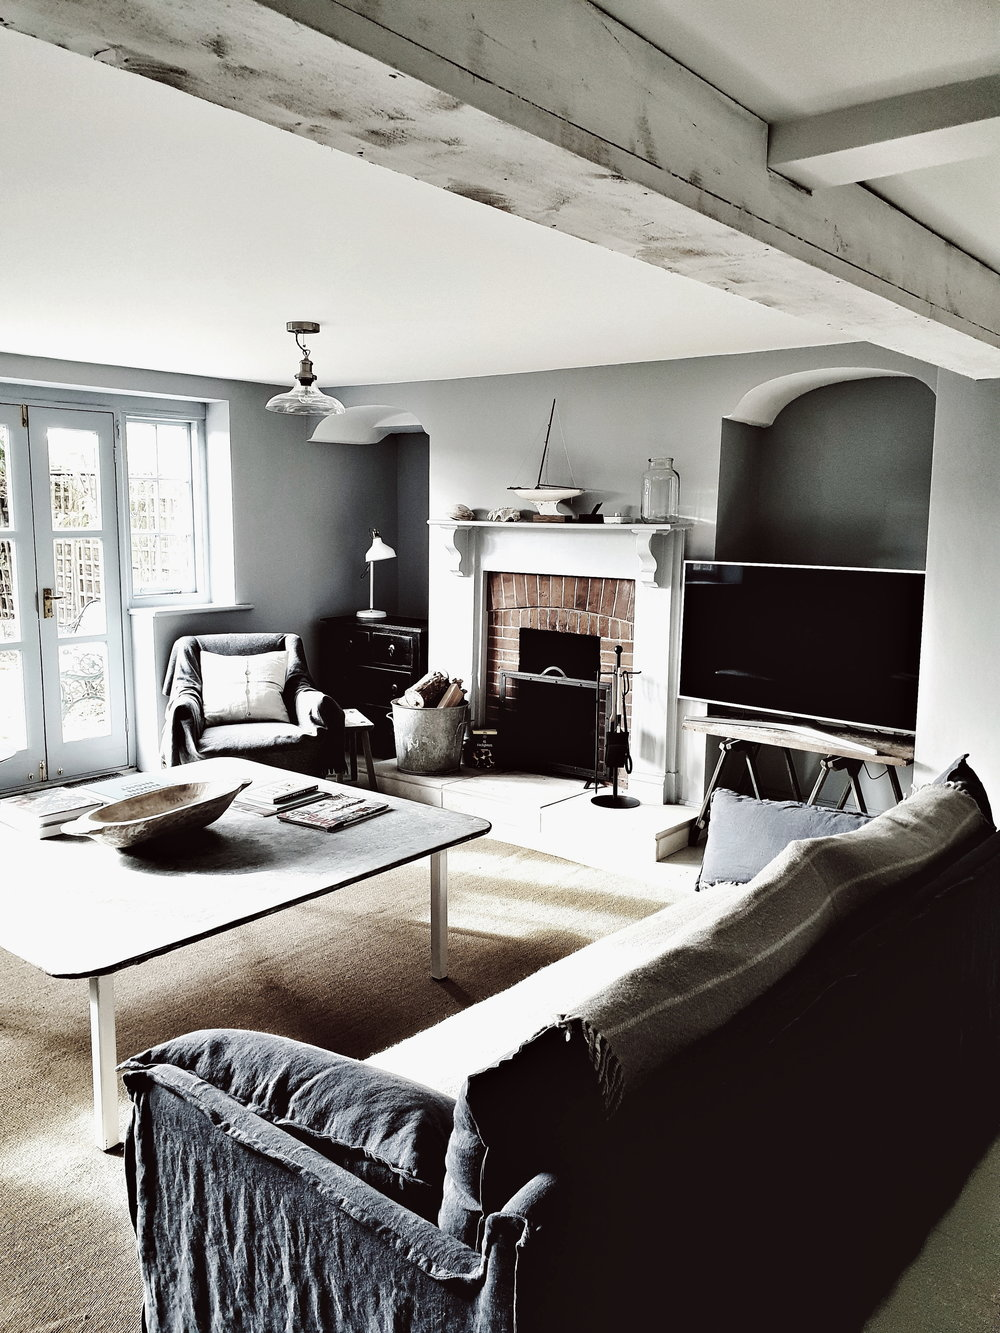 The living room with open fire and that zinc coffee table!